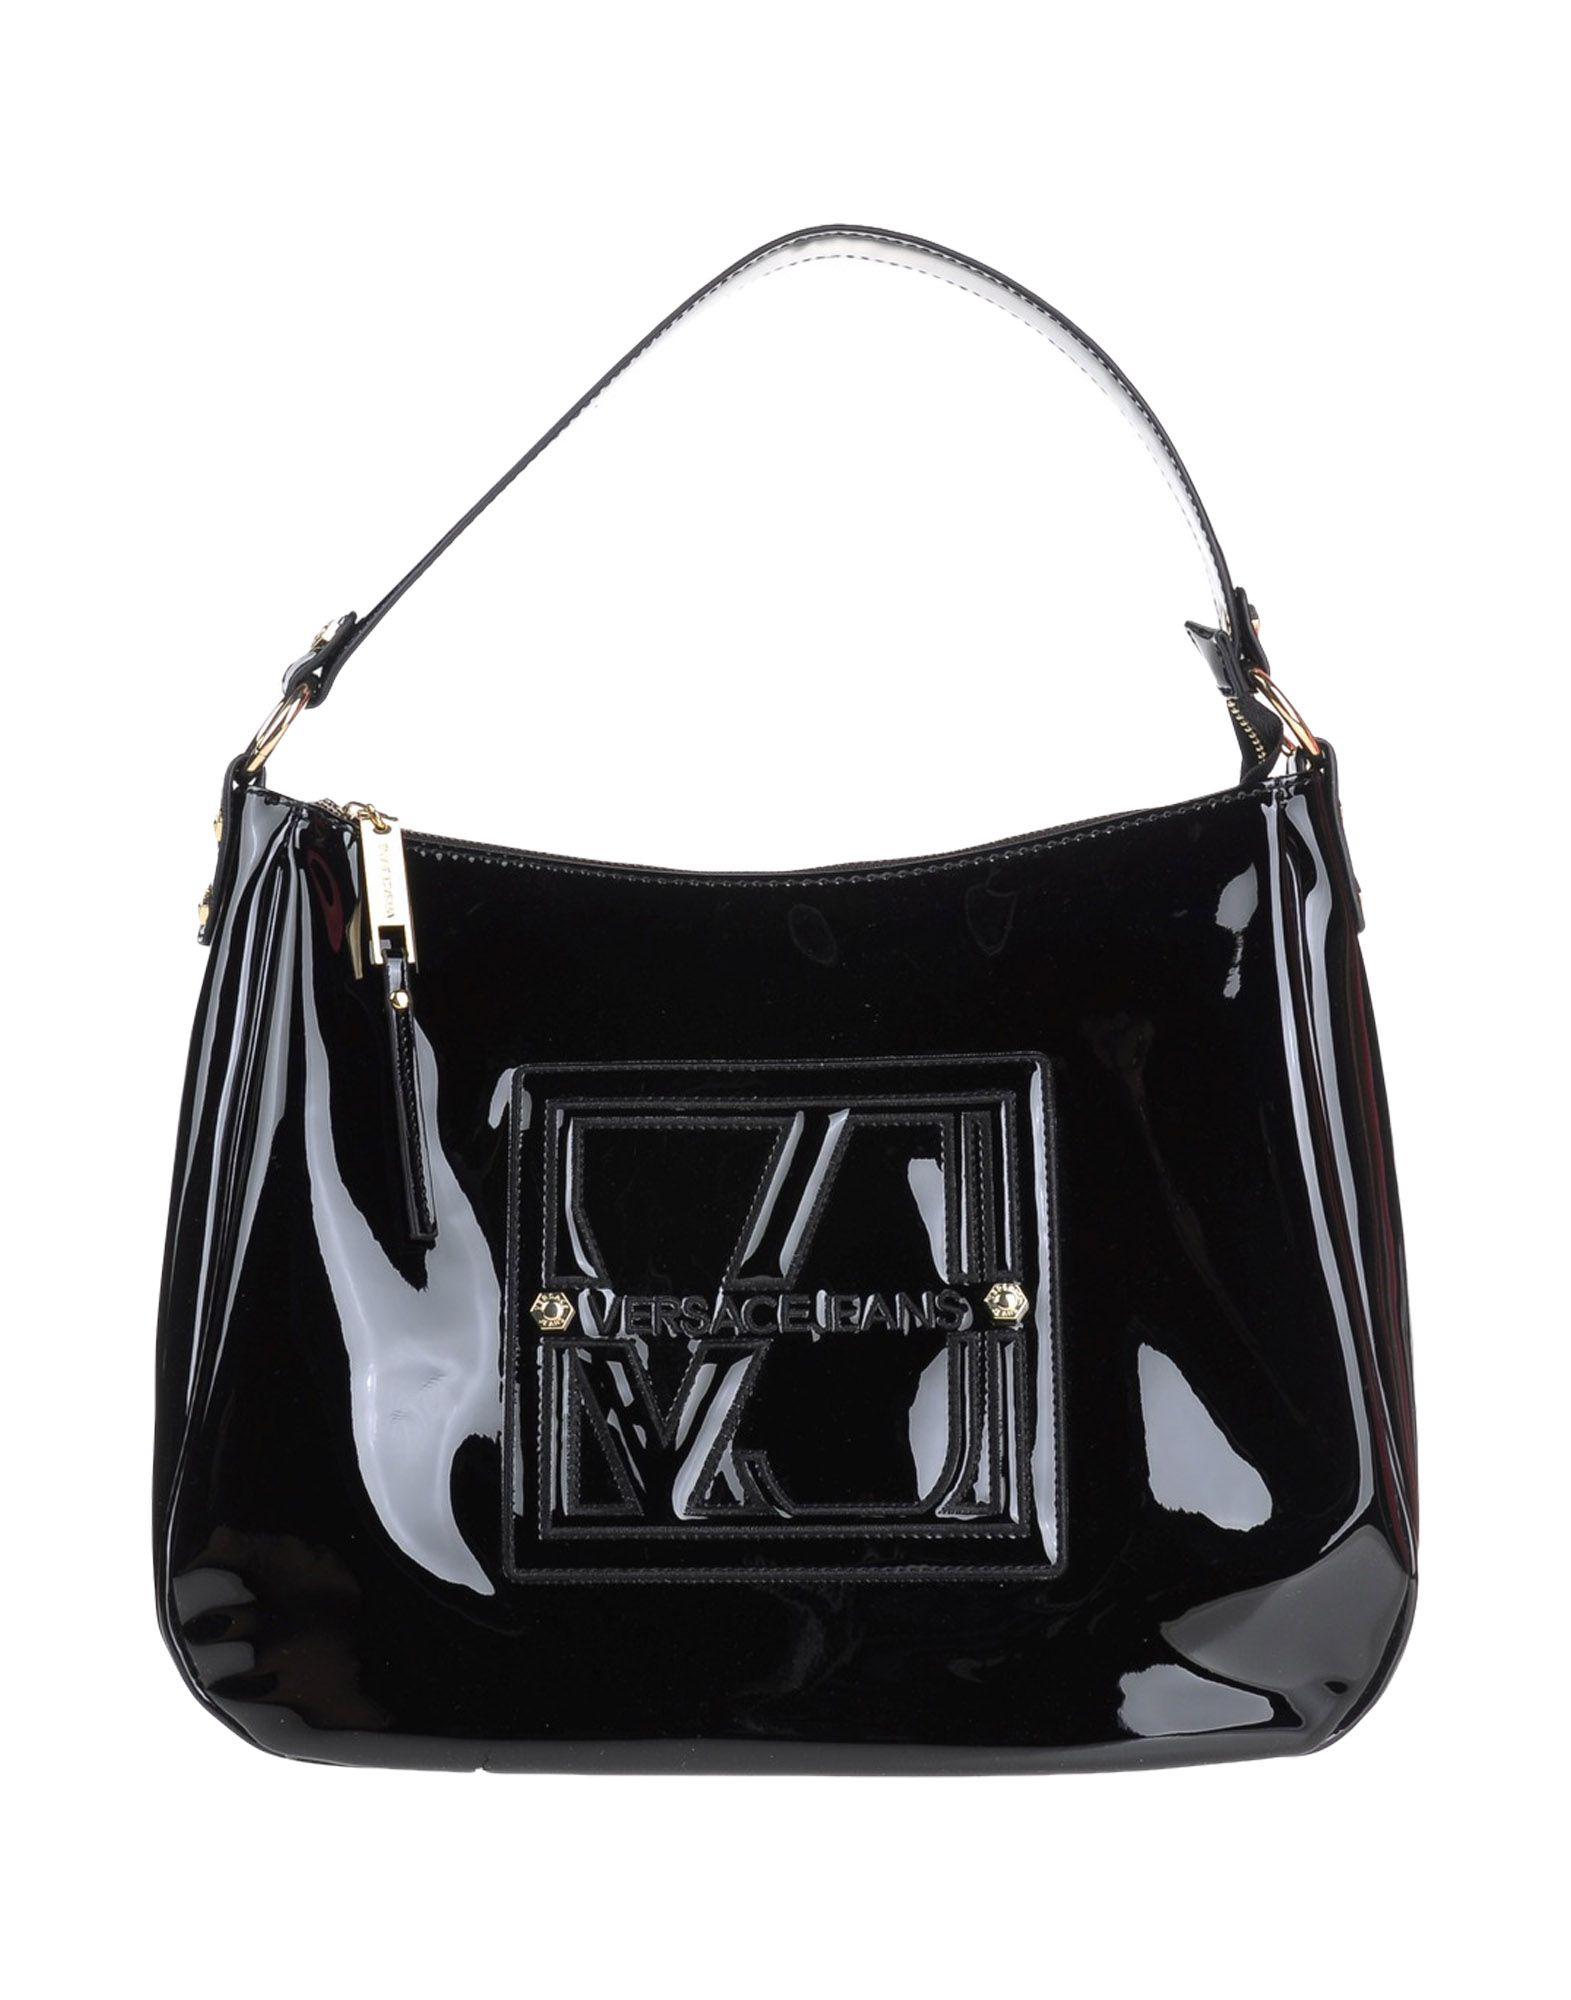 df10107909e1 Lyst - Versace Jeans Handbag in Black